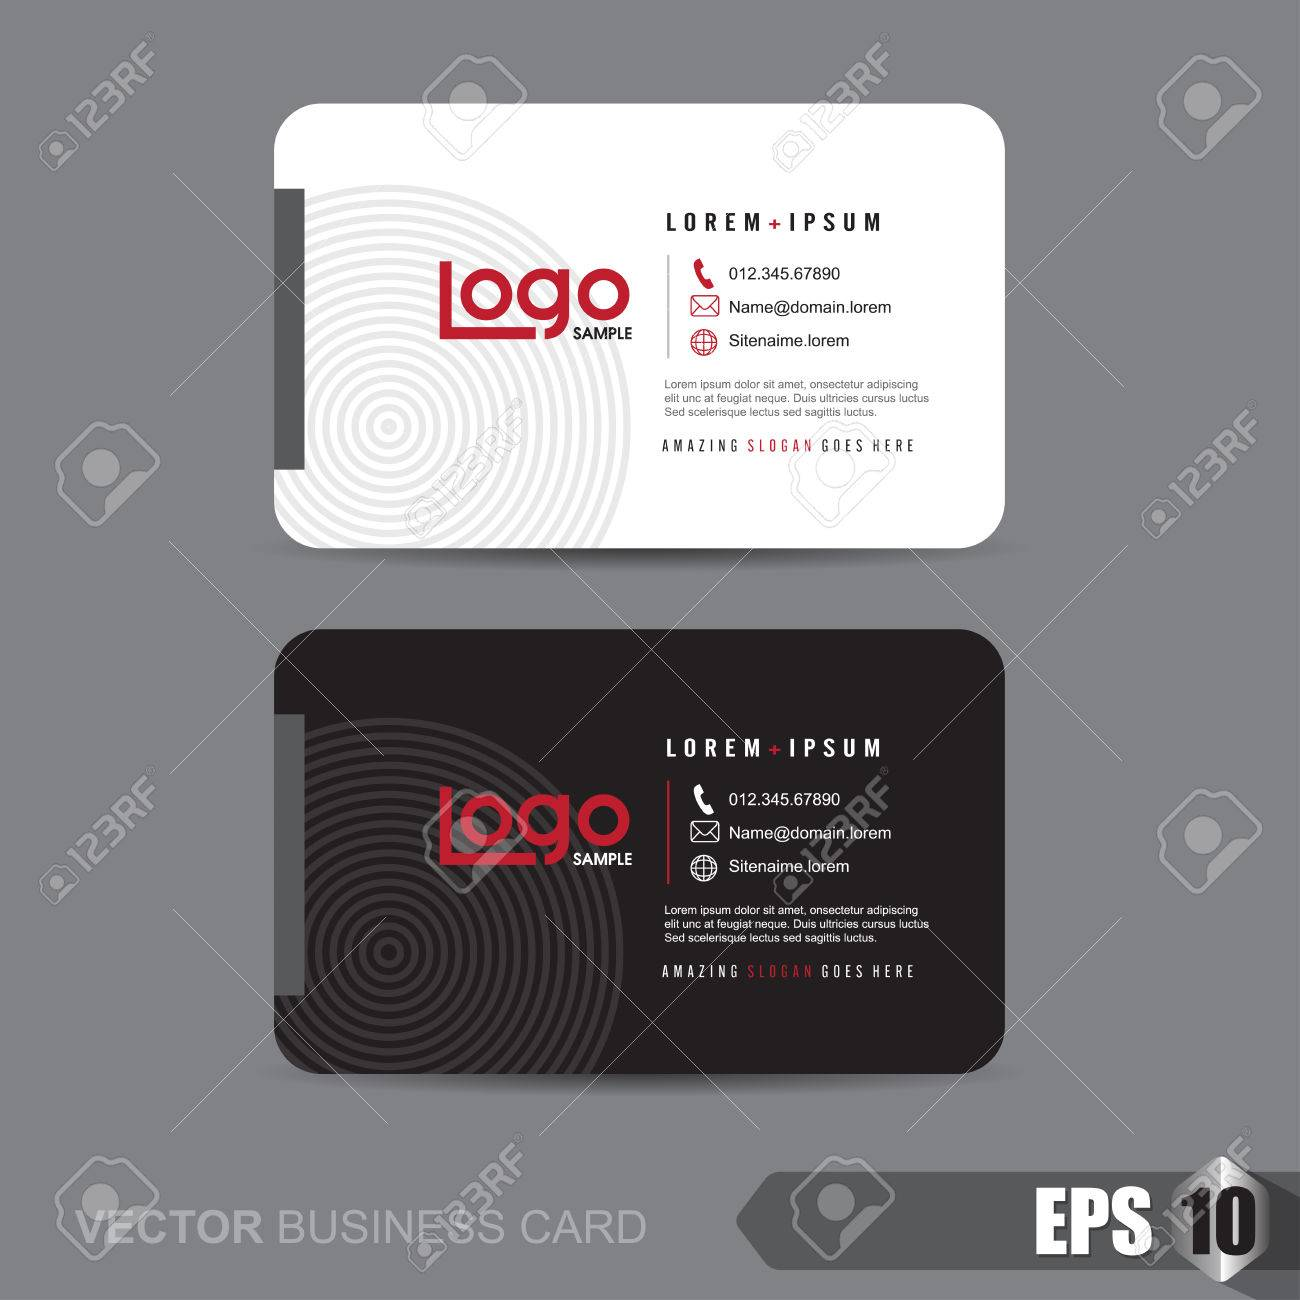 Business card templatevector illustration royalty free cliparts business card templatevector illustration stock vector 46178892 reheart Gallery